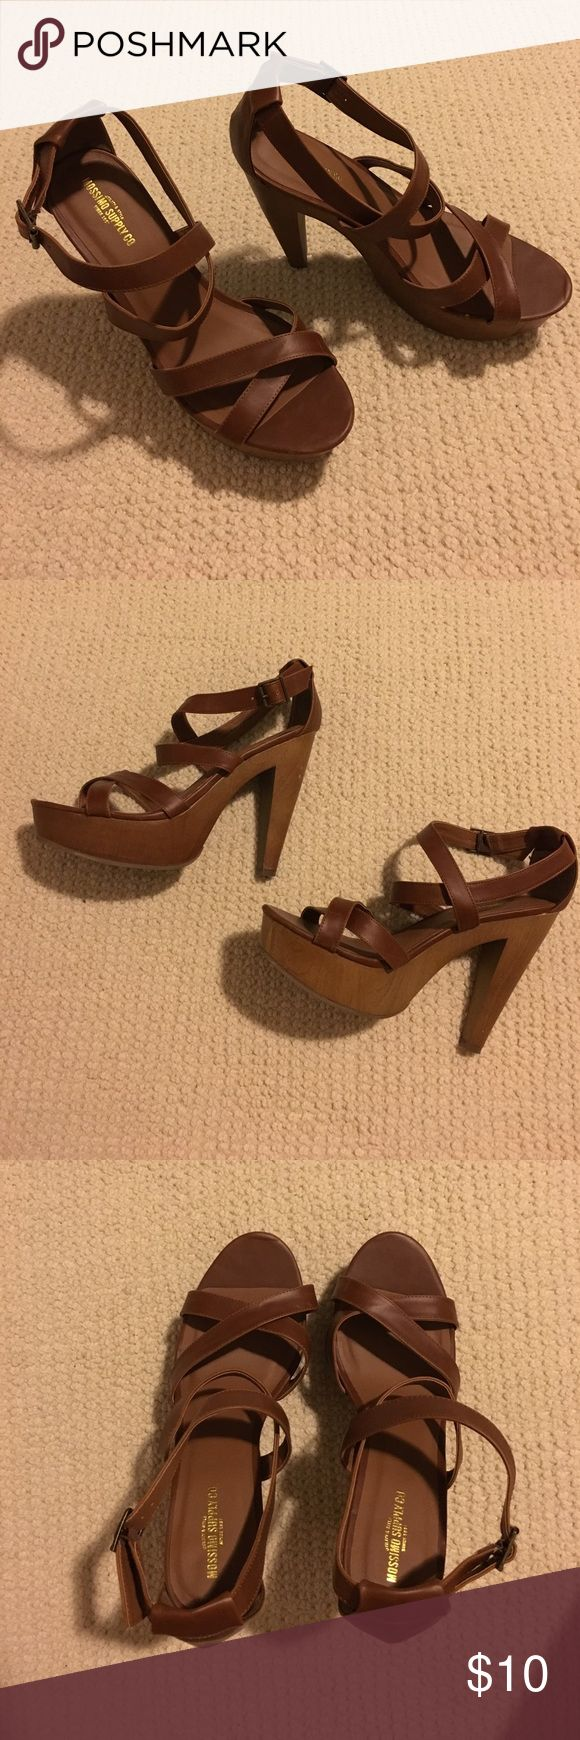 wood heels Target brown strappy heels Mossimo Supply Co. Shoes Heels